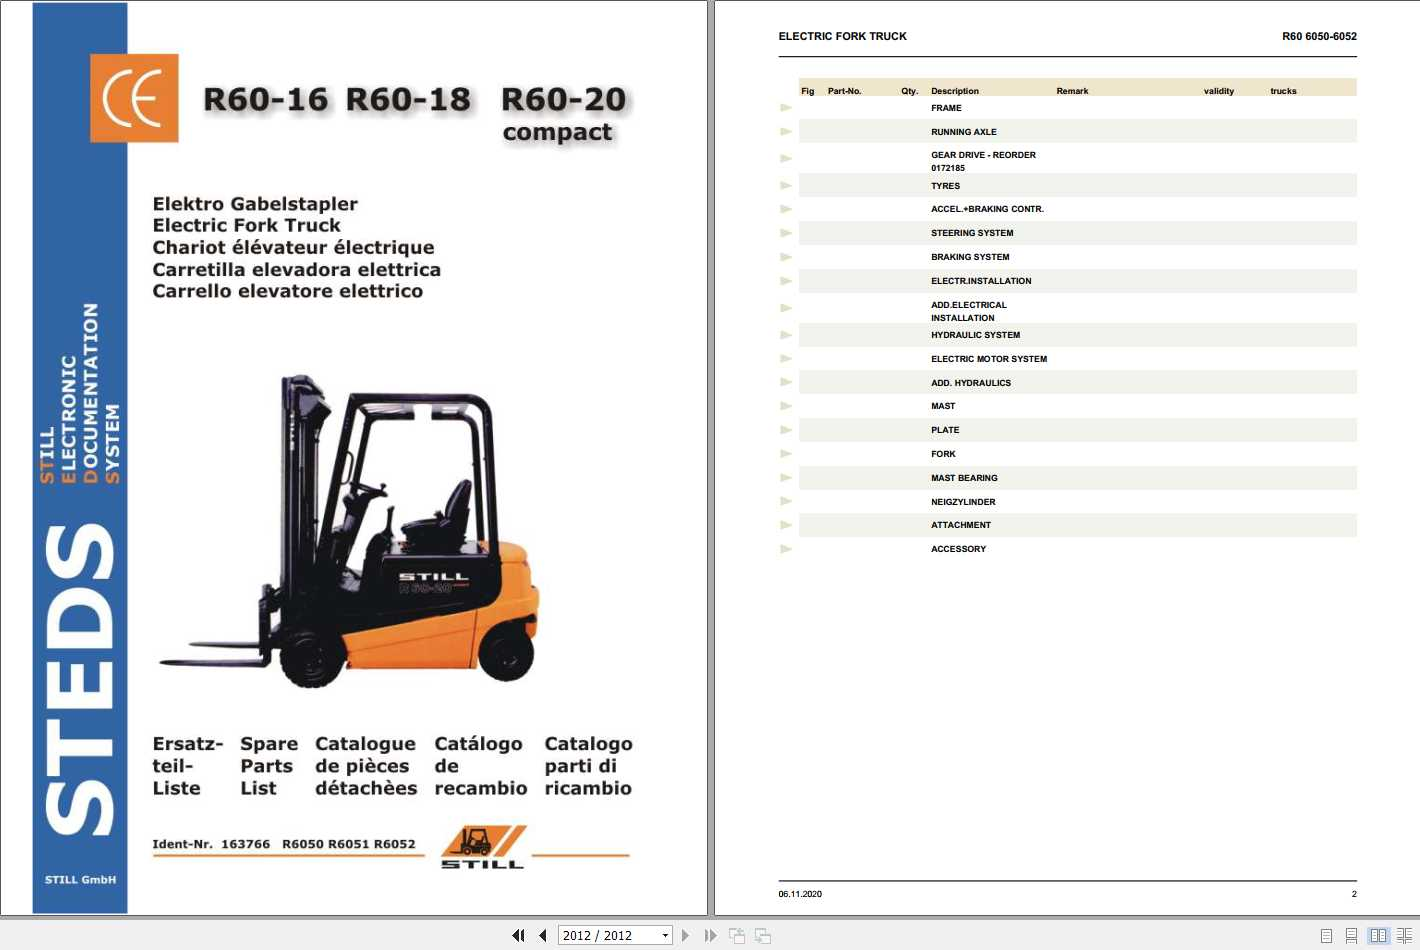 Still Electric Forklift Truck R60 16-18-20 compact Spare Parts Lists